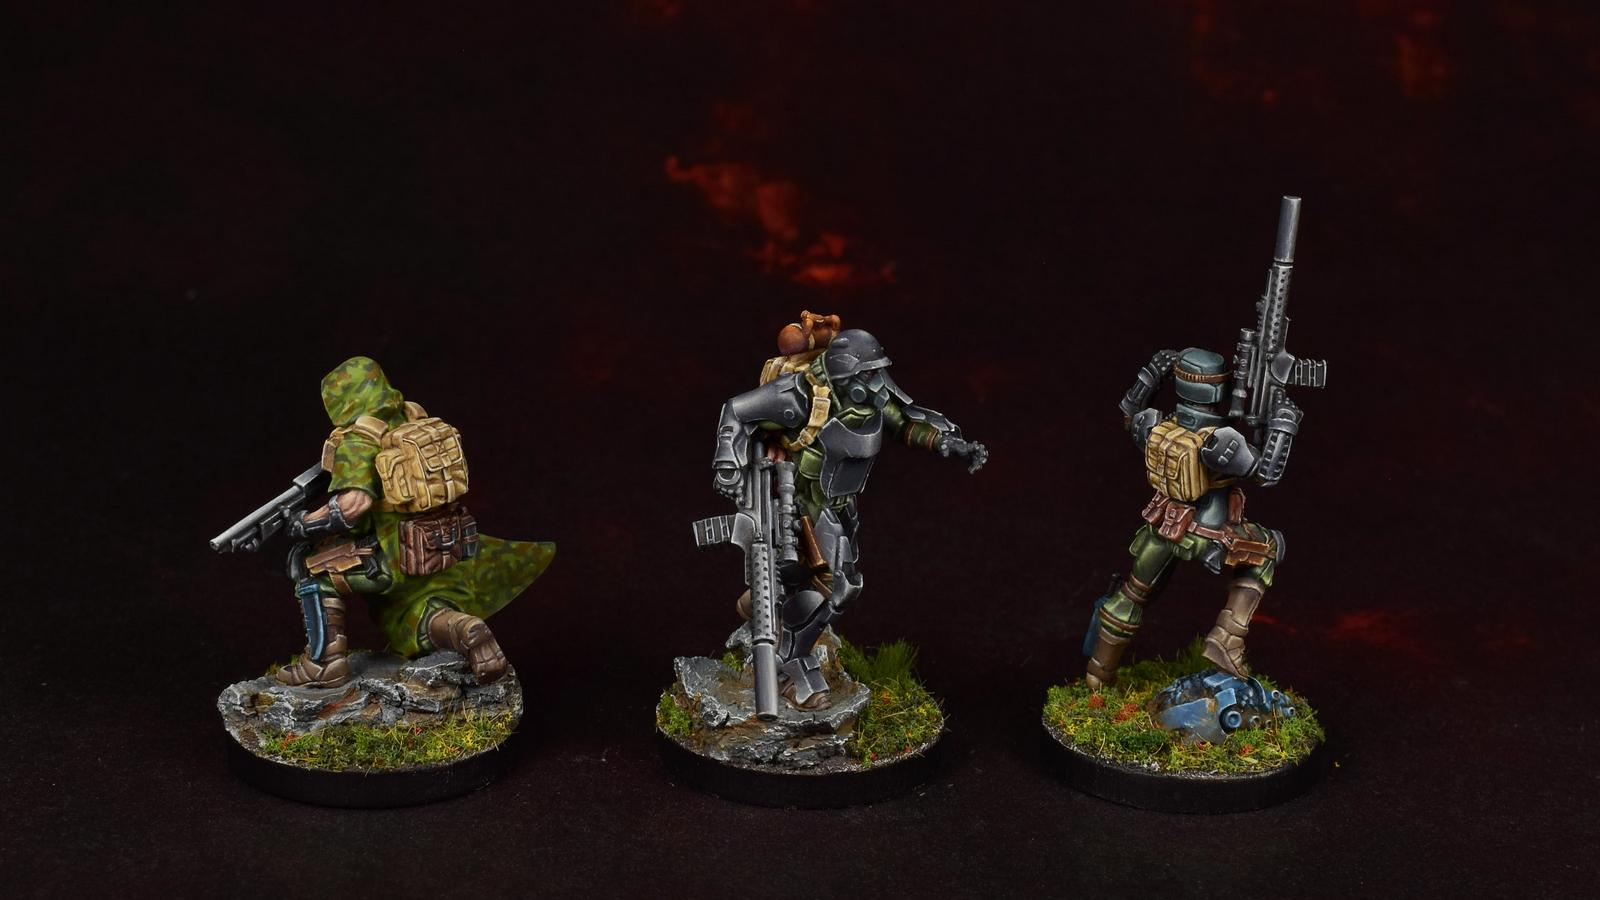 Ariadna, Scouts, Tankhunter, Tartary Army Corps, Veteran